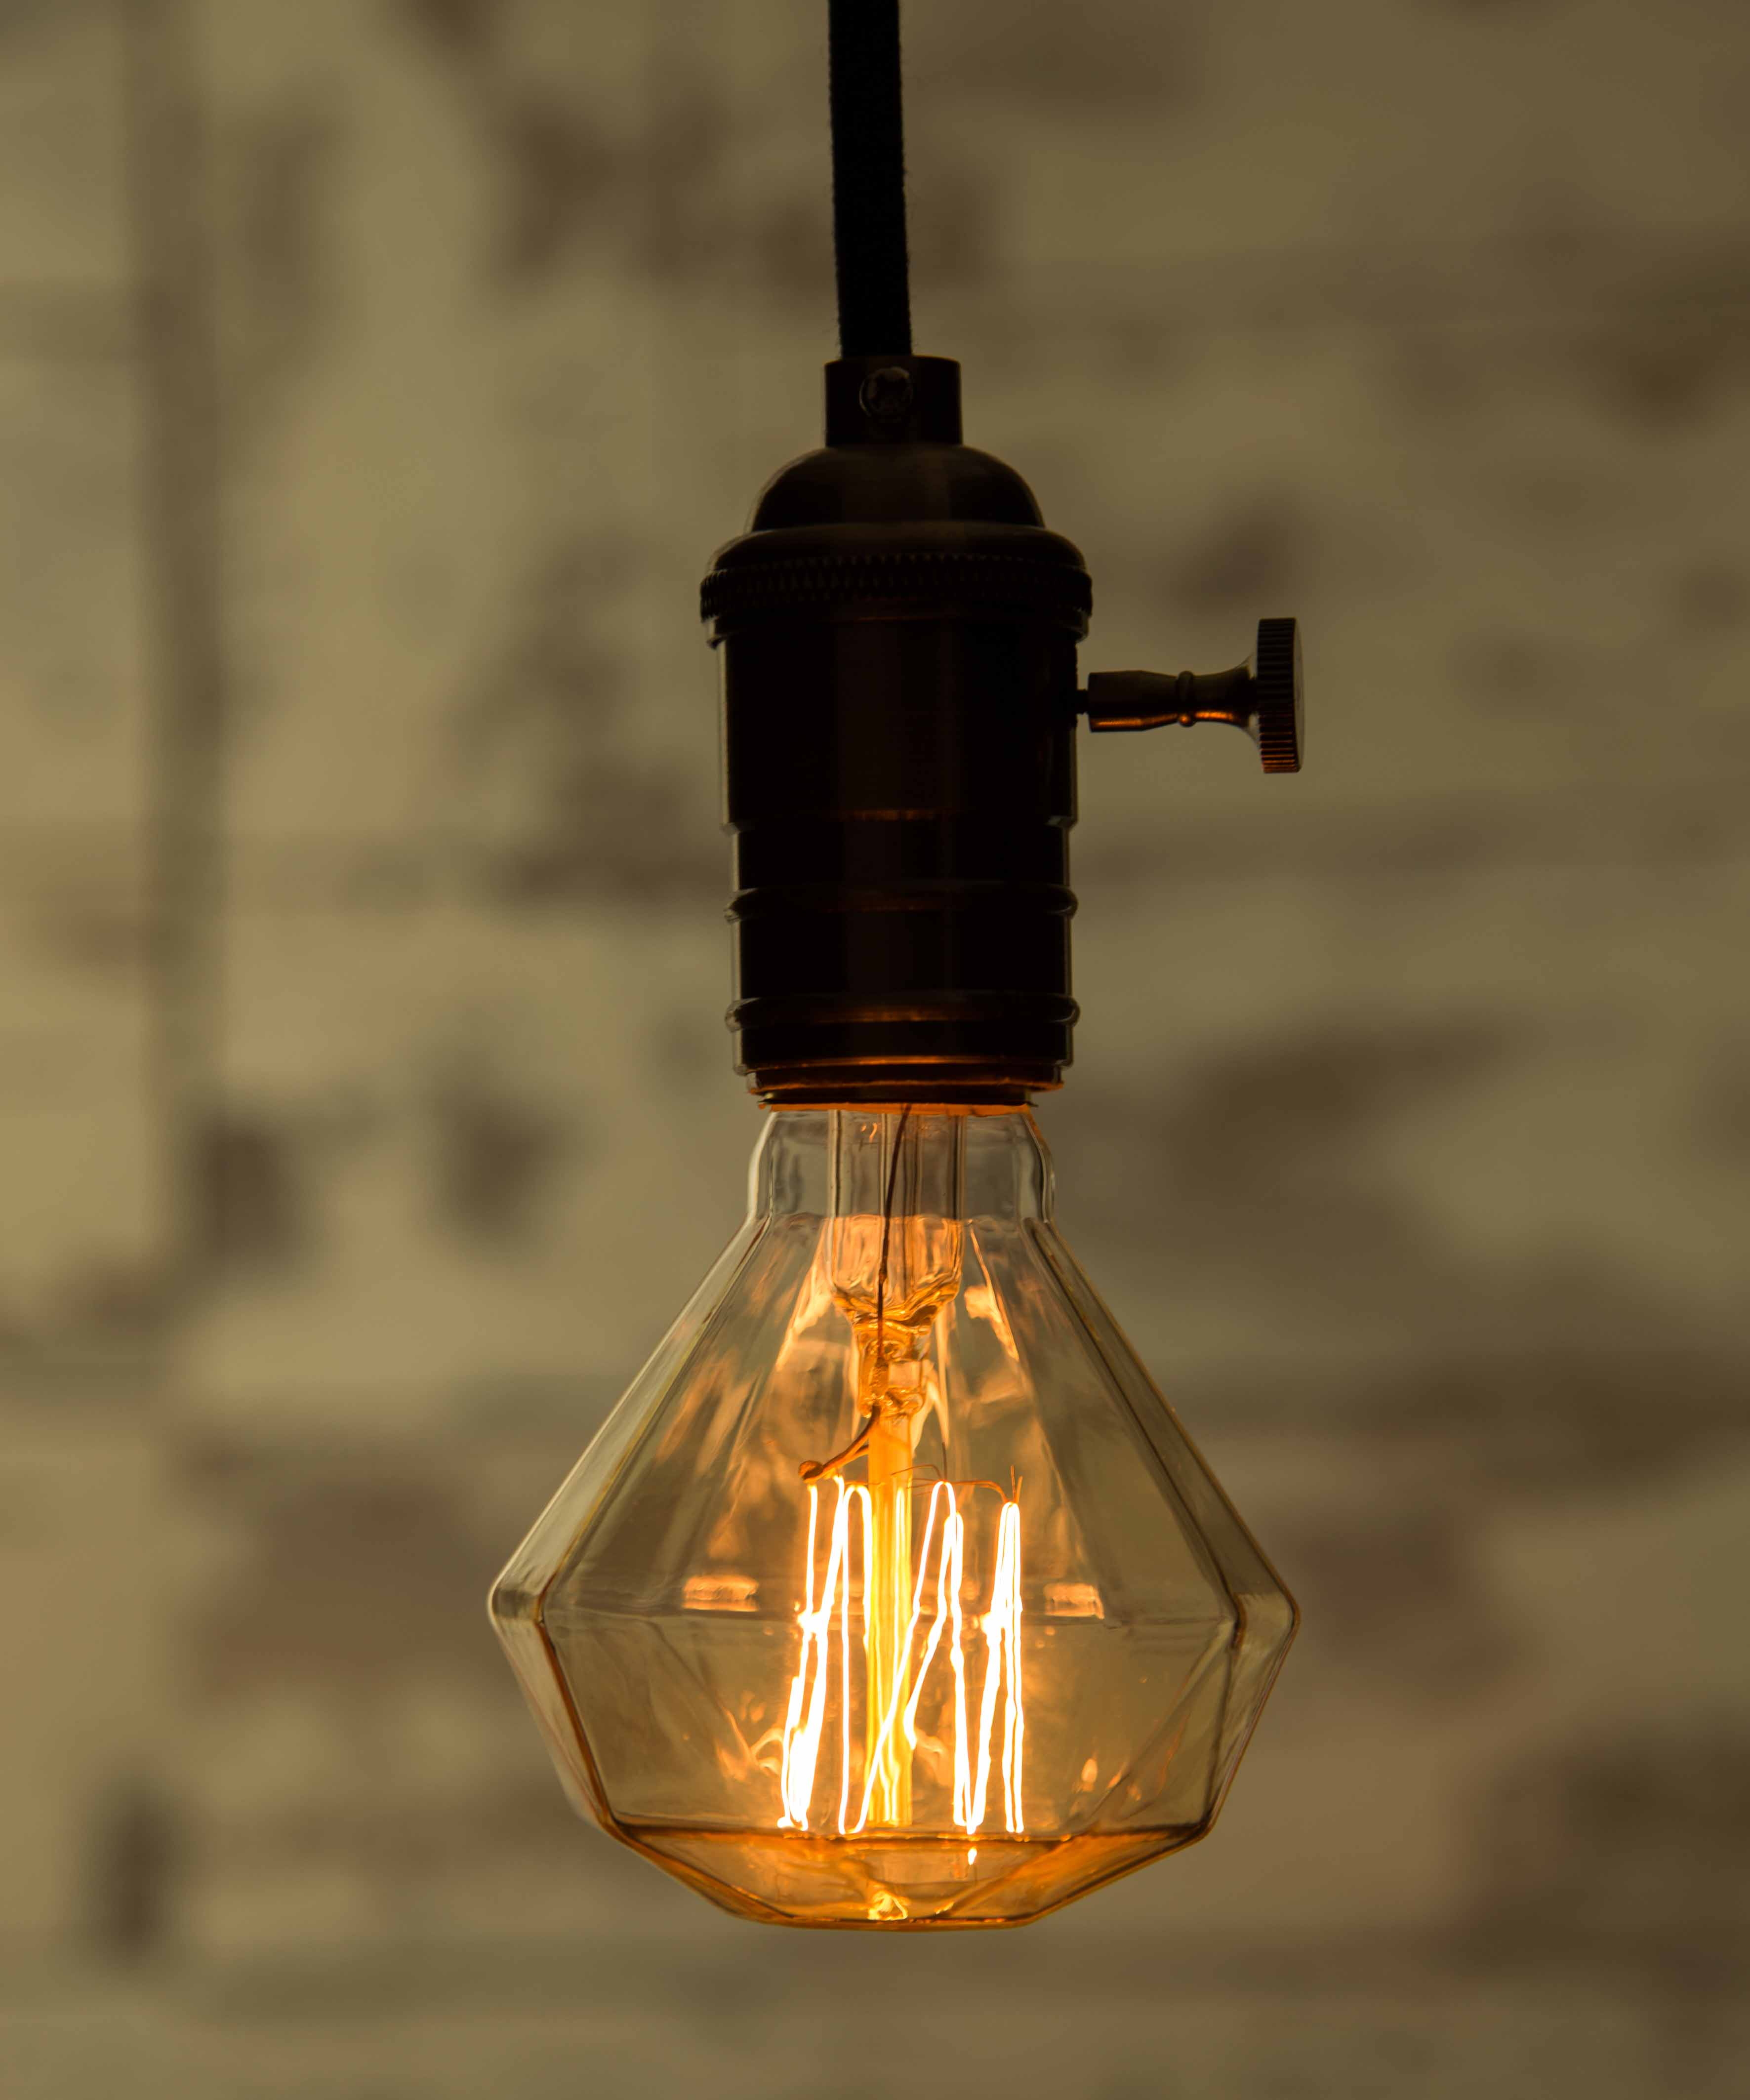 Industrial Vintage Lighting Vintage Edison Light Bulbs 28 Images Industrial